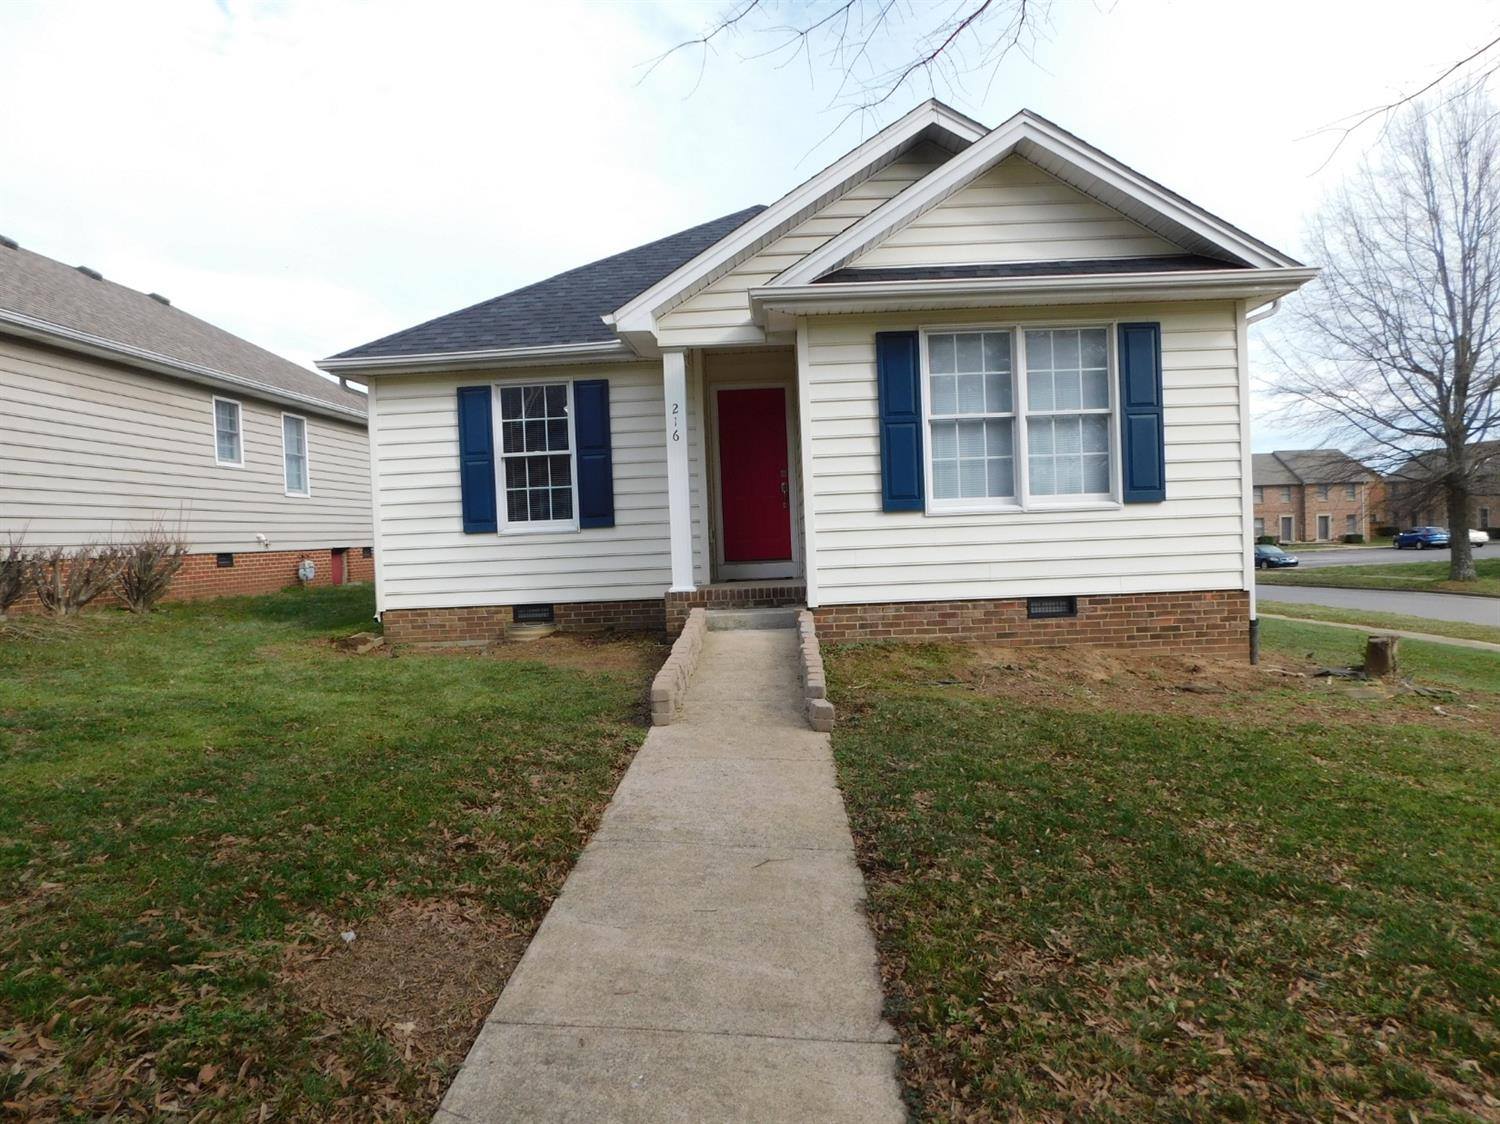 216 Gallant Fox, Danville, KY 40422